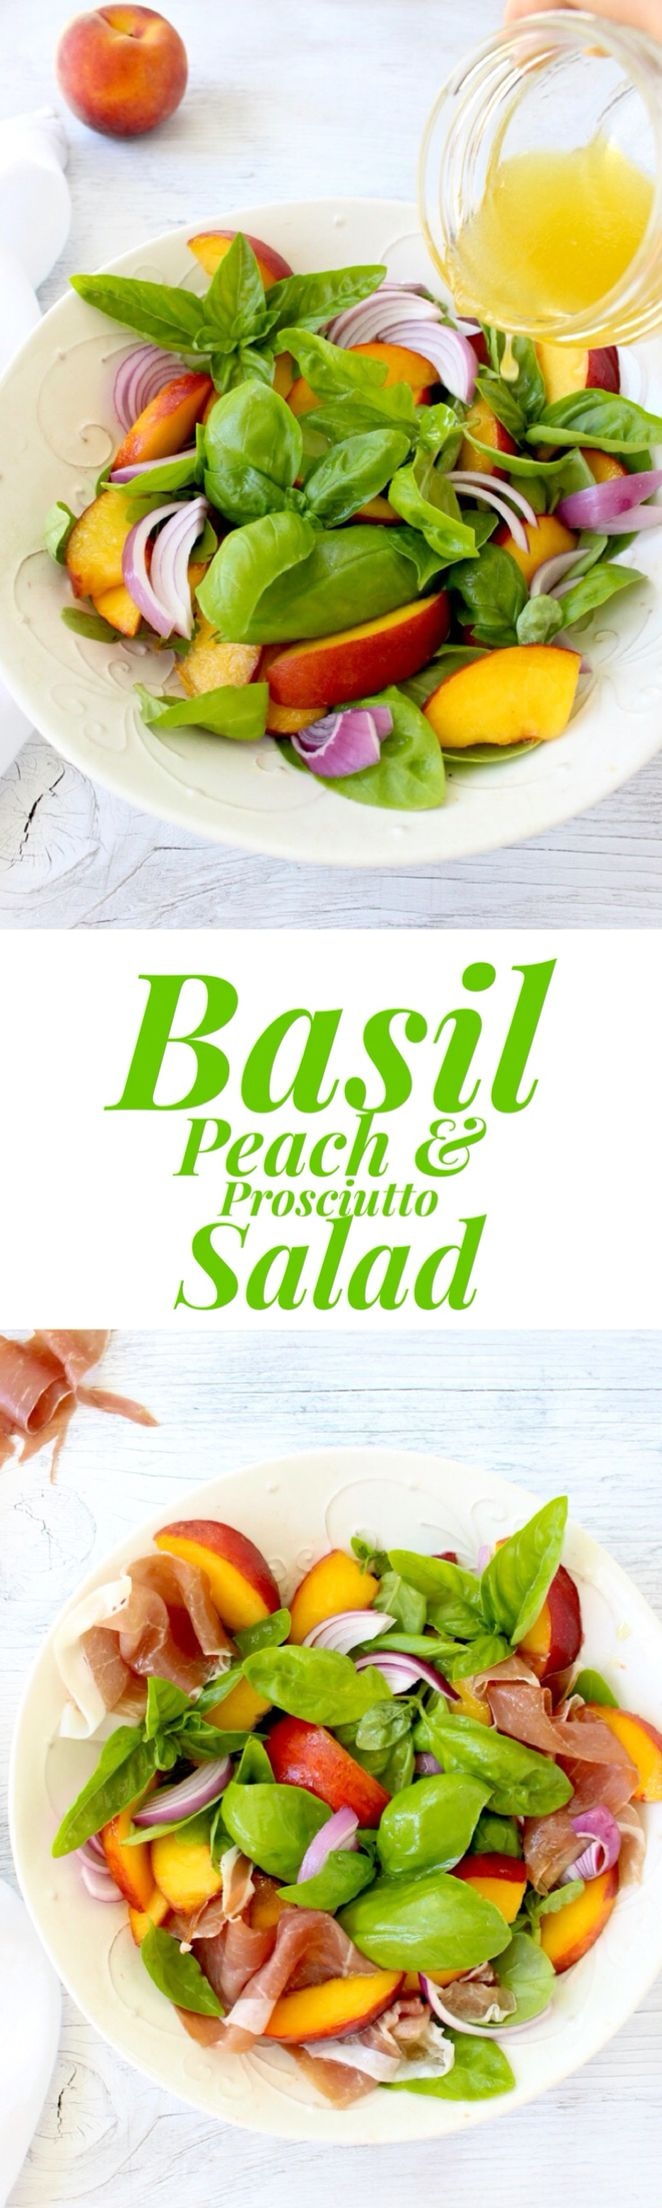 Basil Peach Salad Recipe with Honey Lemon Vinaigrette and Prosciutto di Parma | CiaoFlorentina.com @CiaoFlorentina